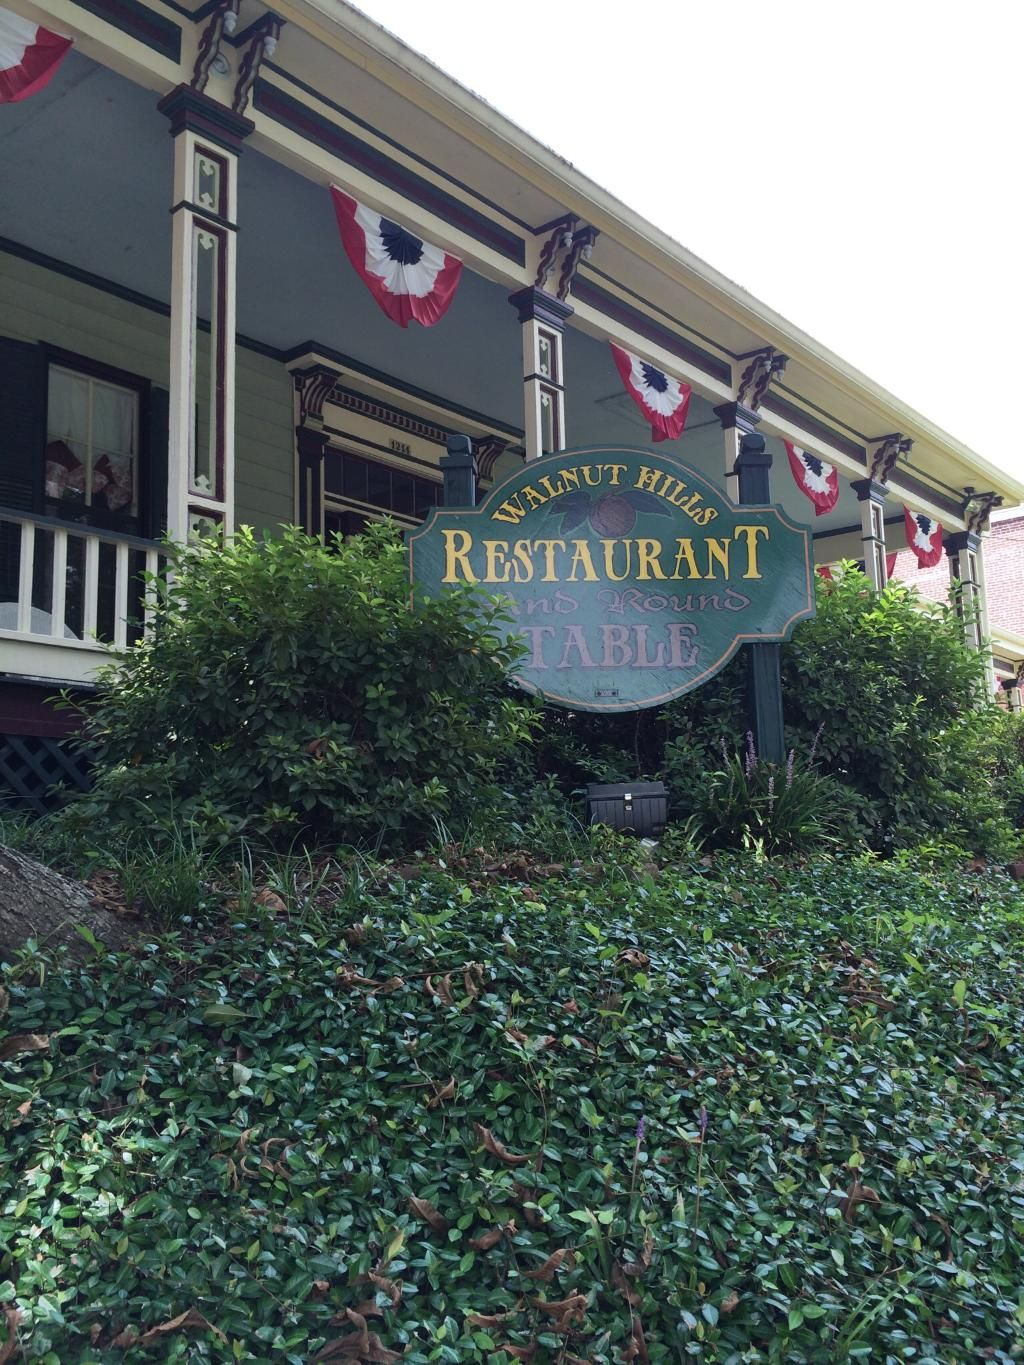 Walnut Hills Restaurant, Vicksburg, MS   Have visited three times on our travels. 5 Star each time. Fabulous food served by incredibly friendly folks!!!!!